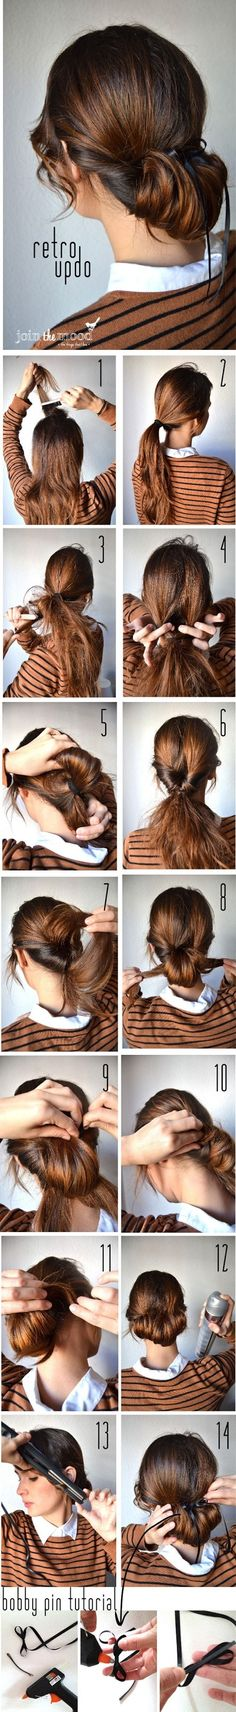 Retro Updo Step-By-Step